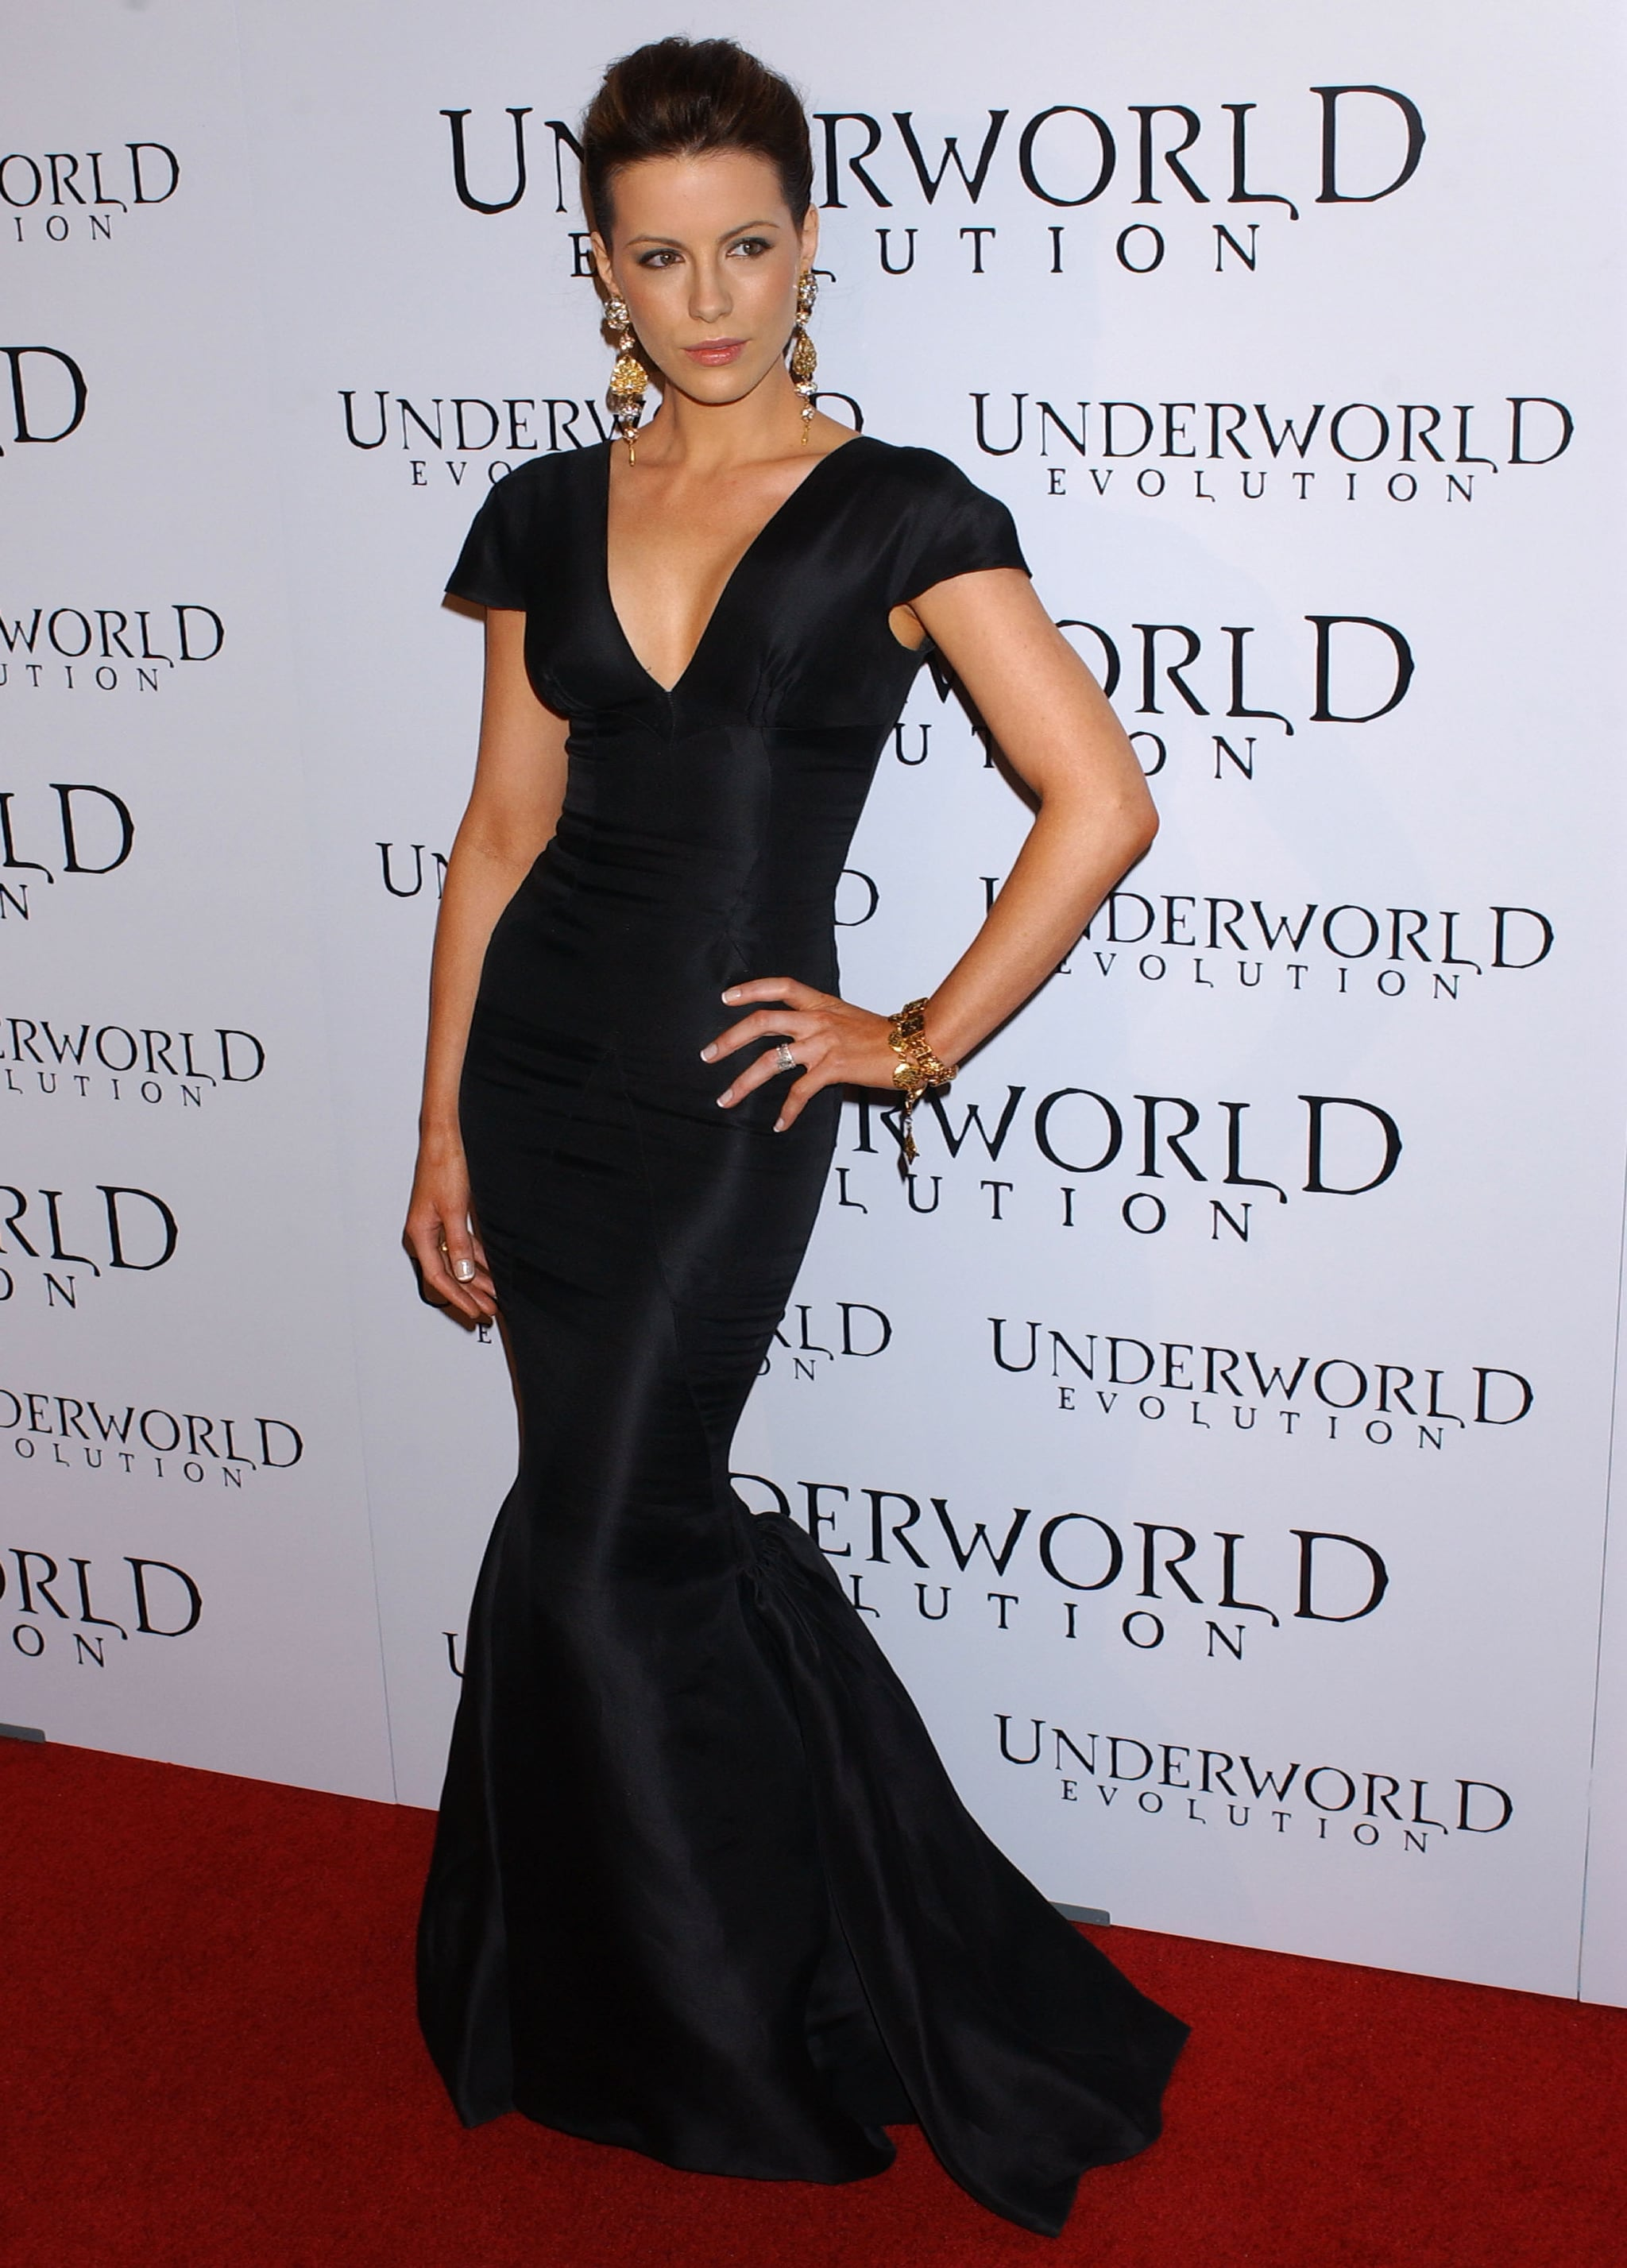 Kate Beckinsale donned a tight black gown for the Underworld: Evolution premiere in January 2006.